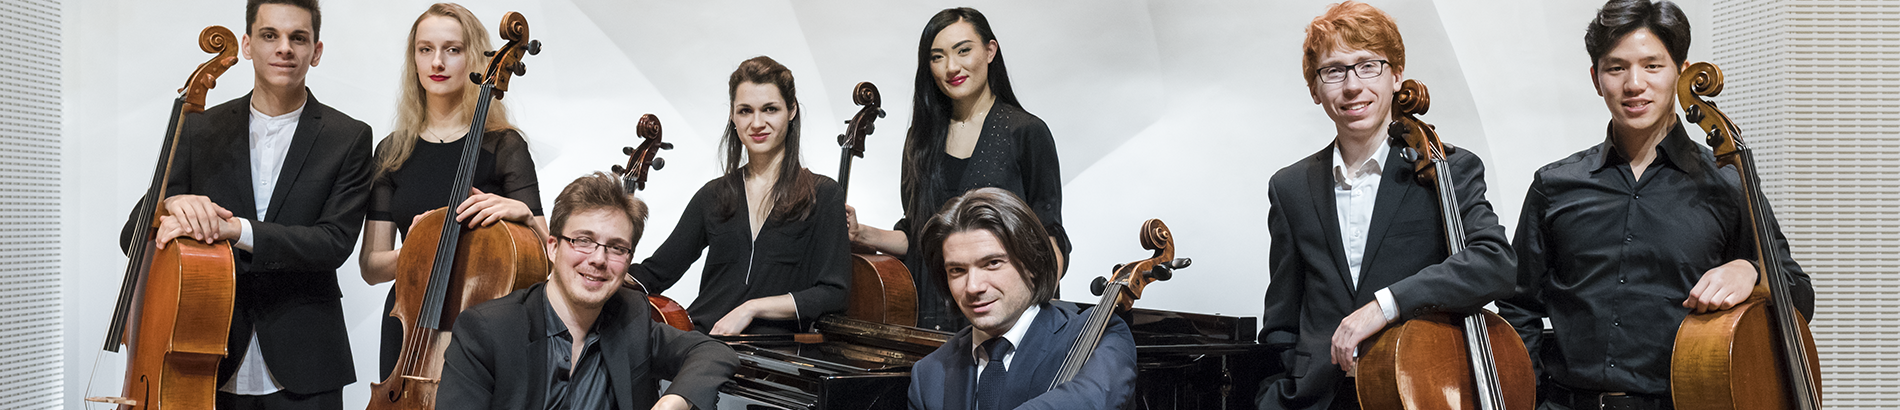 The concert of laureates (5)—under the direction of Gautier Capuçon